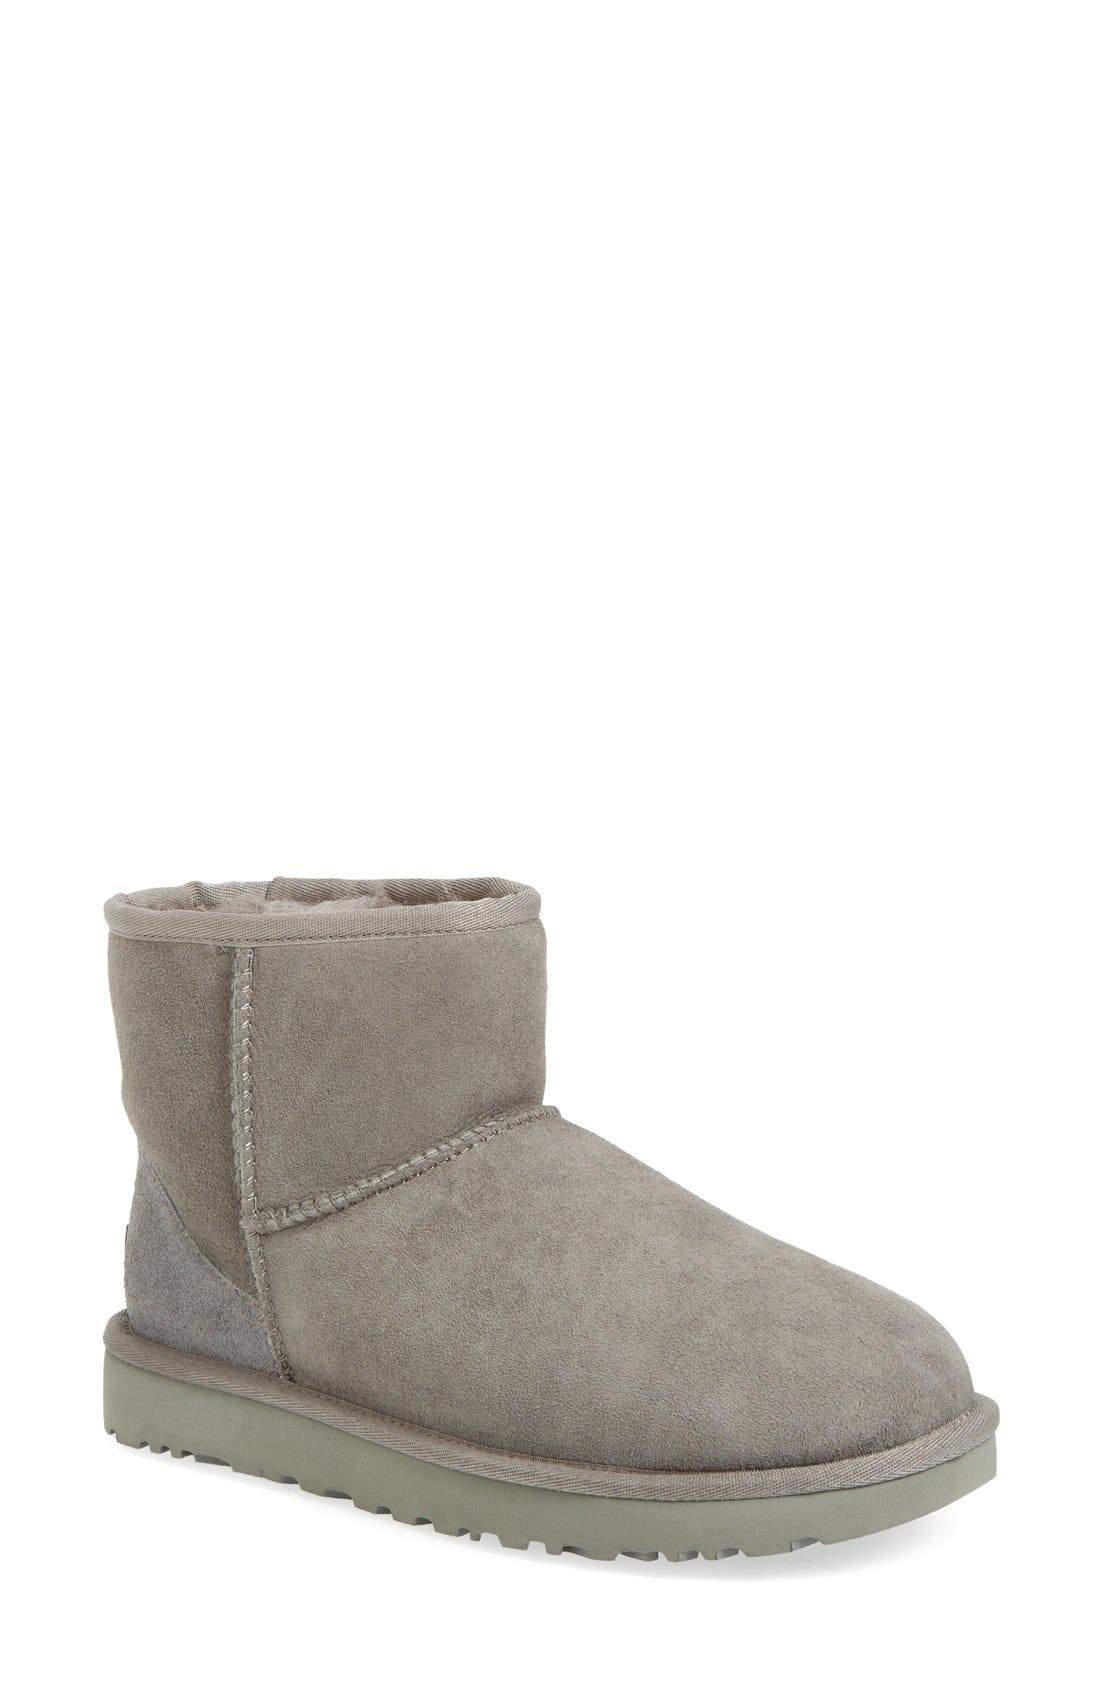 storm grey ugg boots